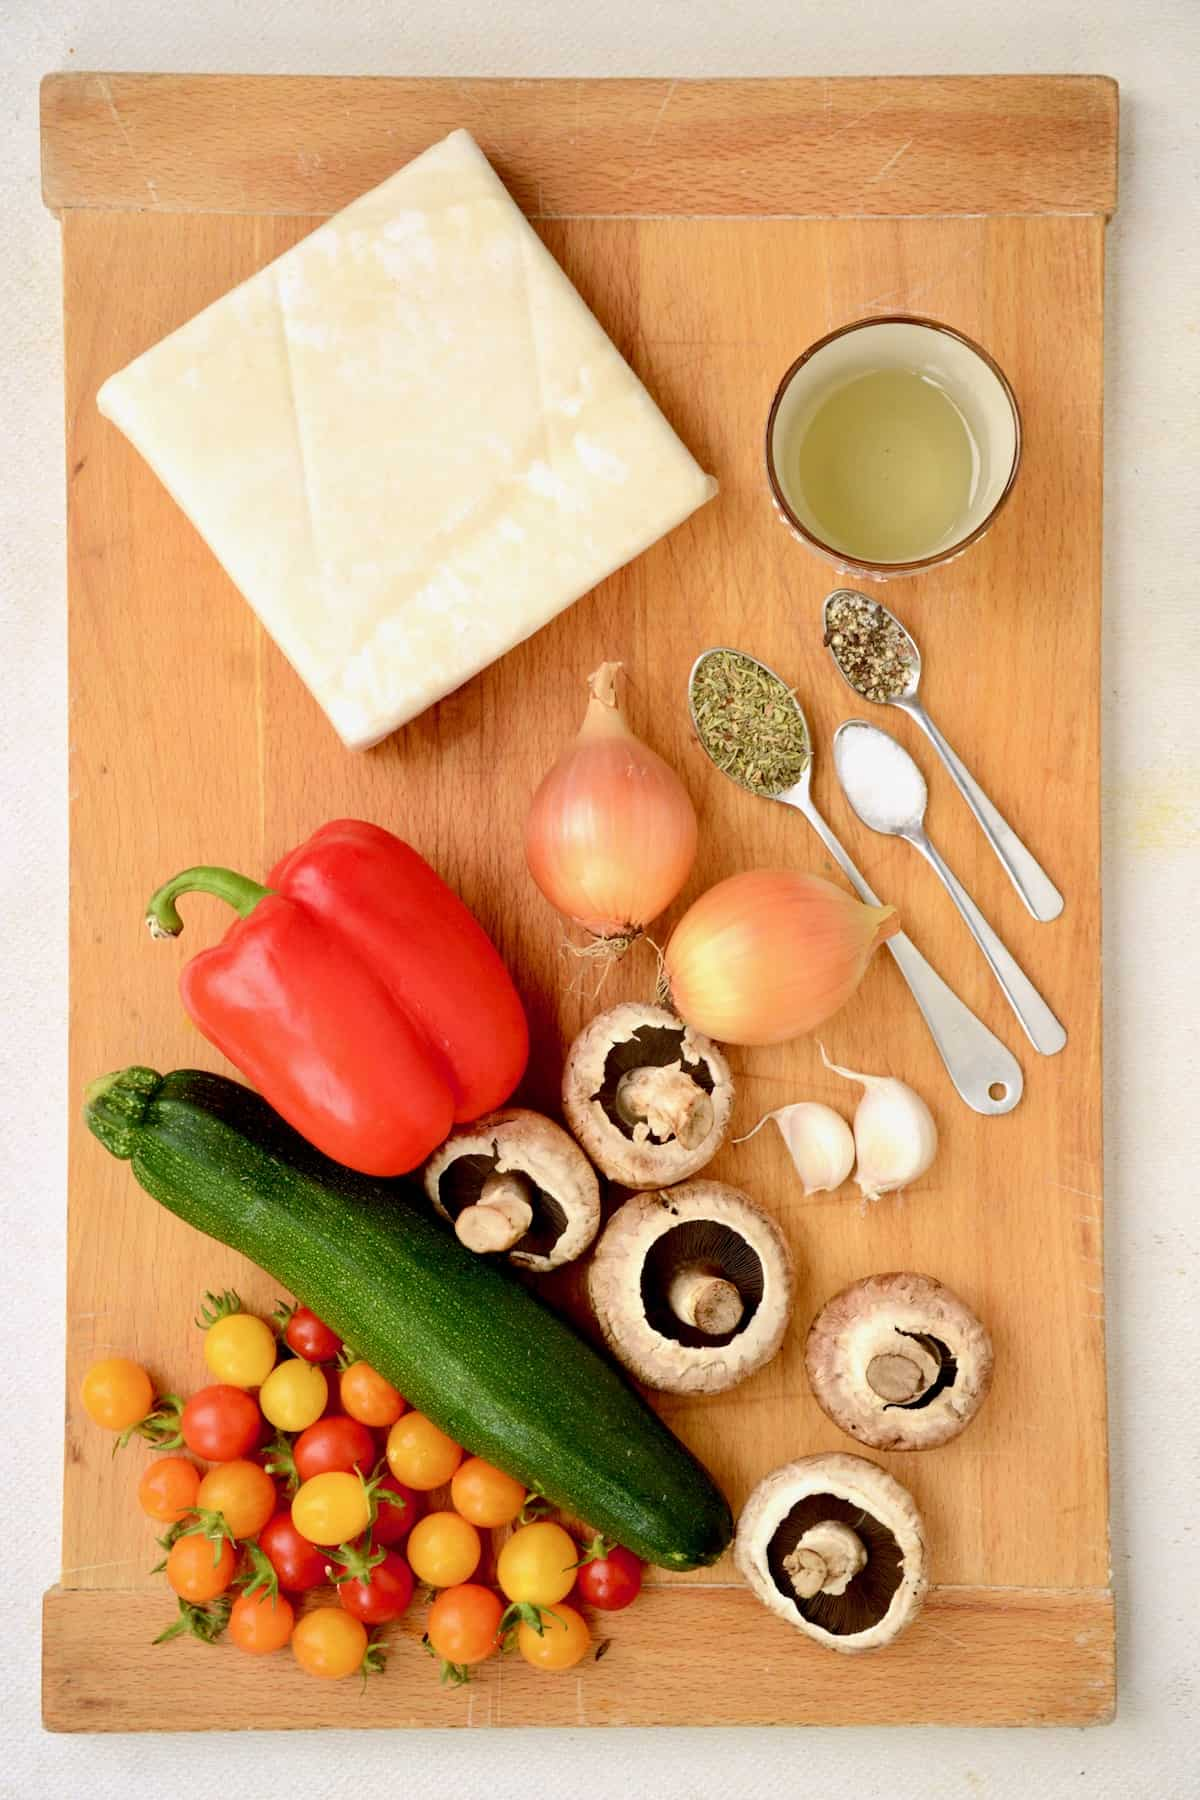 A block of puff pastry, seasonings and vegetables on a wooden board.